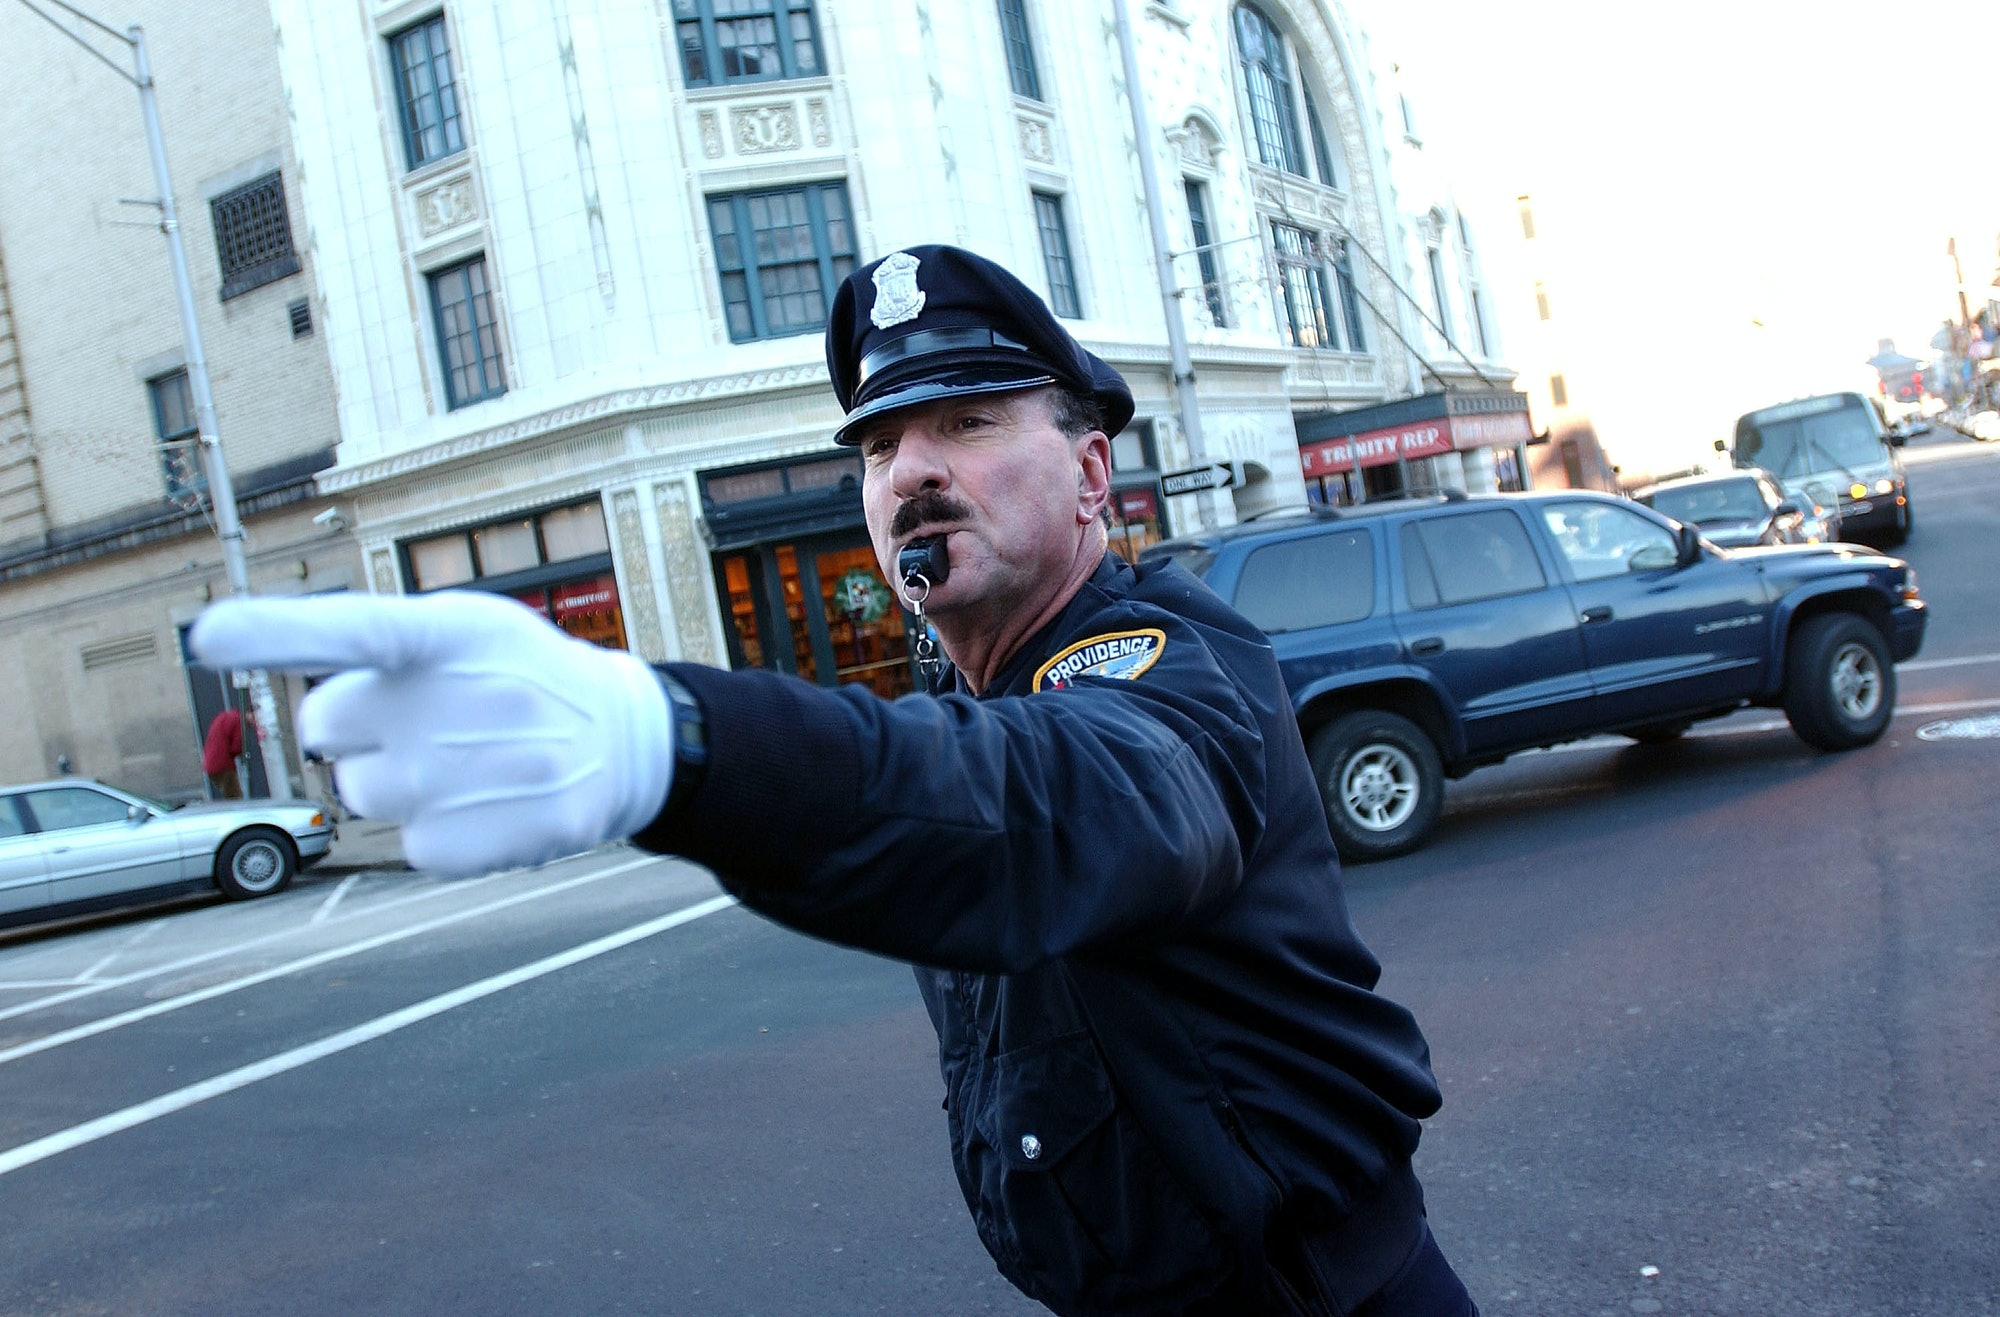 PROVIDENCE, RI - DECEMBER 14: Retired police officer Tony Lepore performs his dance routine while directing traffic December 14,2004in downtown Providence, Rhode Island. Lepore has been entertaining drivers and directing traffic at intersections around Providence for 20 years. He came upon the idea after seeing a 'Candid Camera' clip of New York City police officers who flamboyantly directed traffic in the 1950's. (Photo by Darren McCollester/Getty Images)